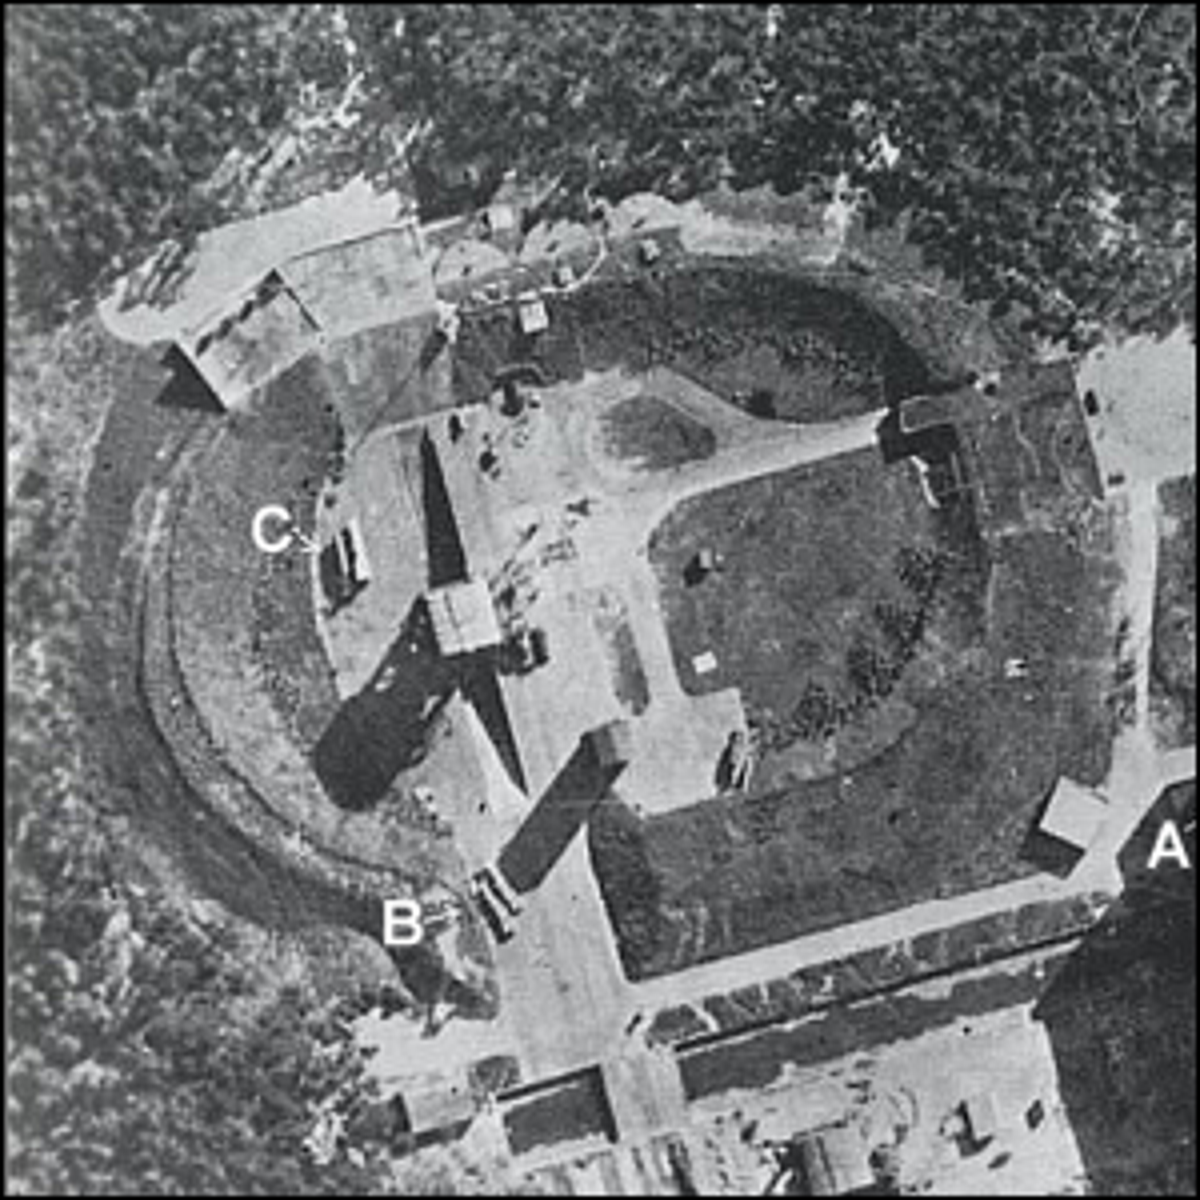 A 1943 Royal Air Force reconnaissance photograph of V-2 rockets at Peenemunde Test Stand VII.